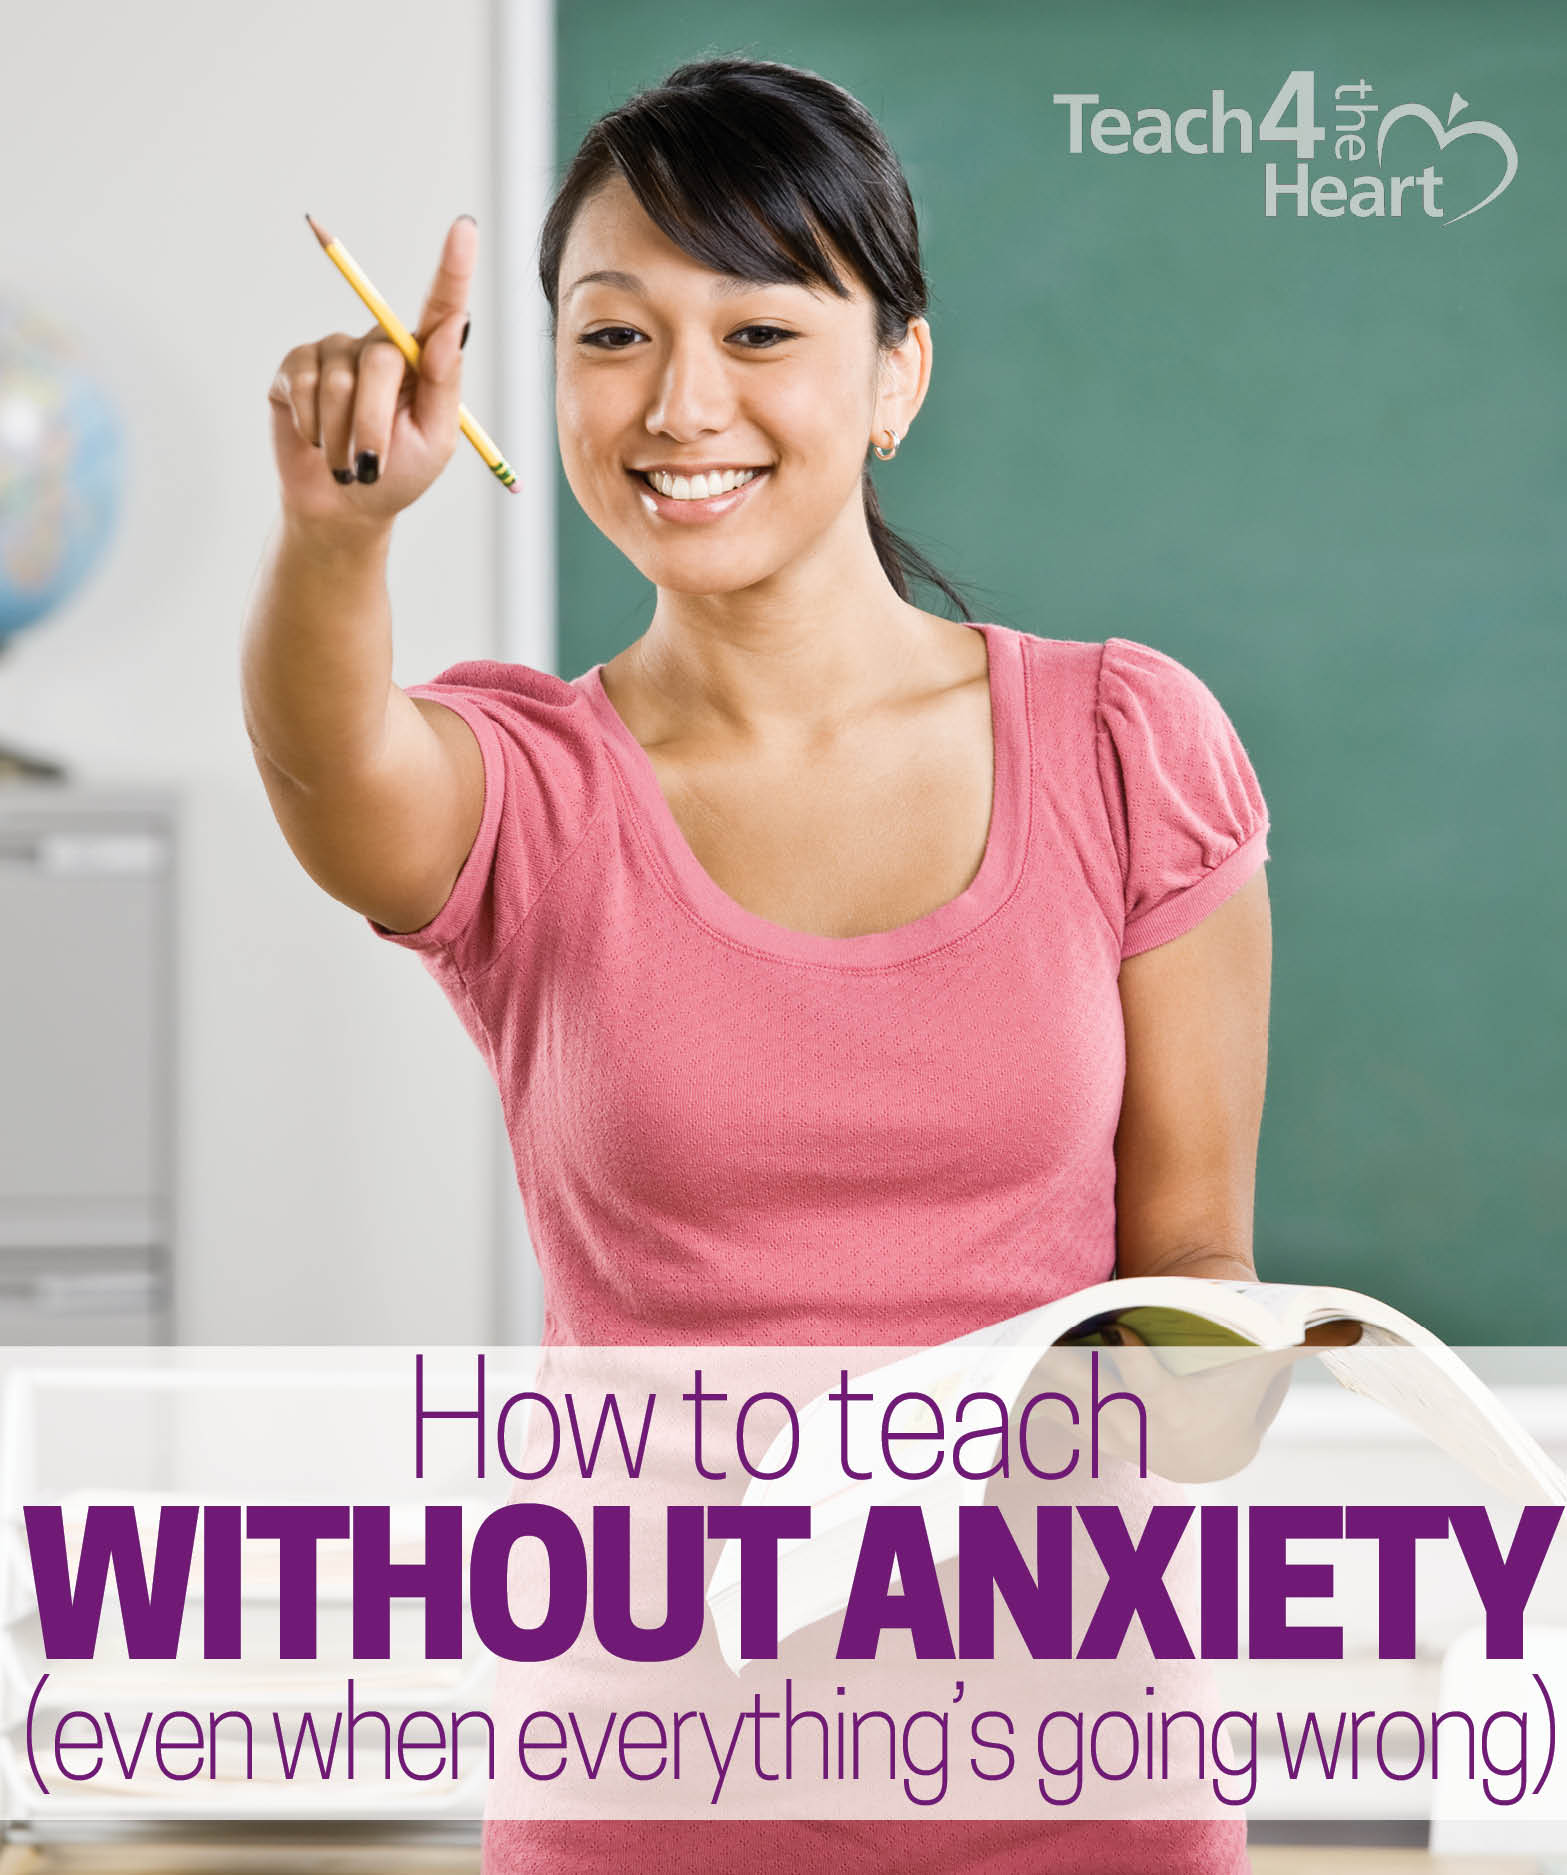 how to teach without anxiety (even when everything is going wrong)